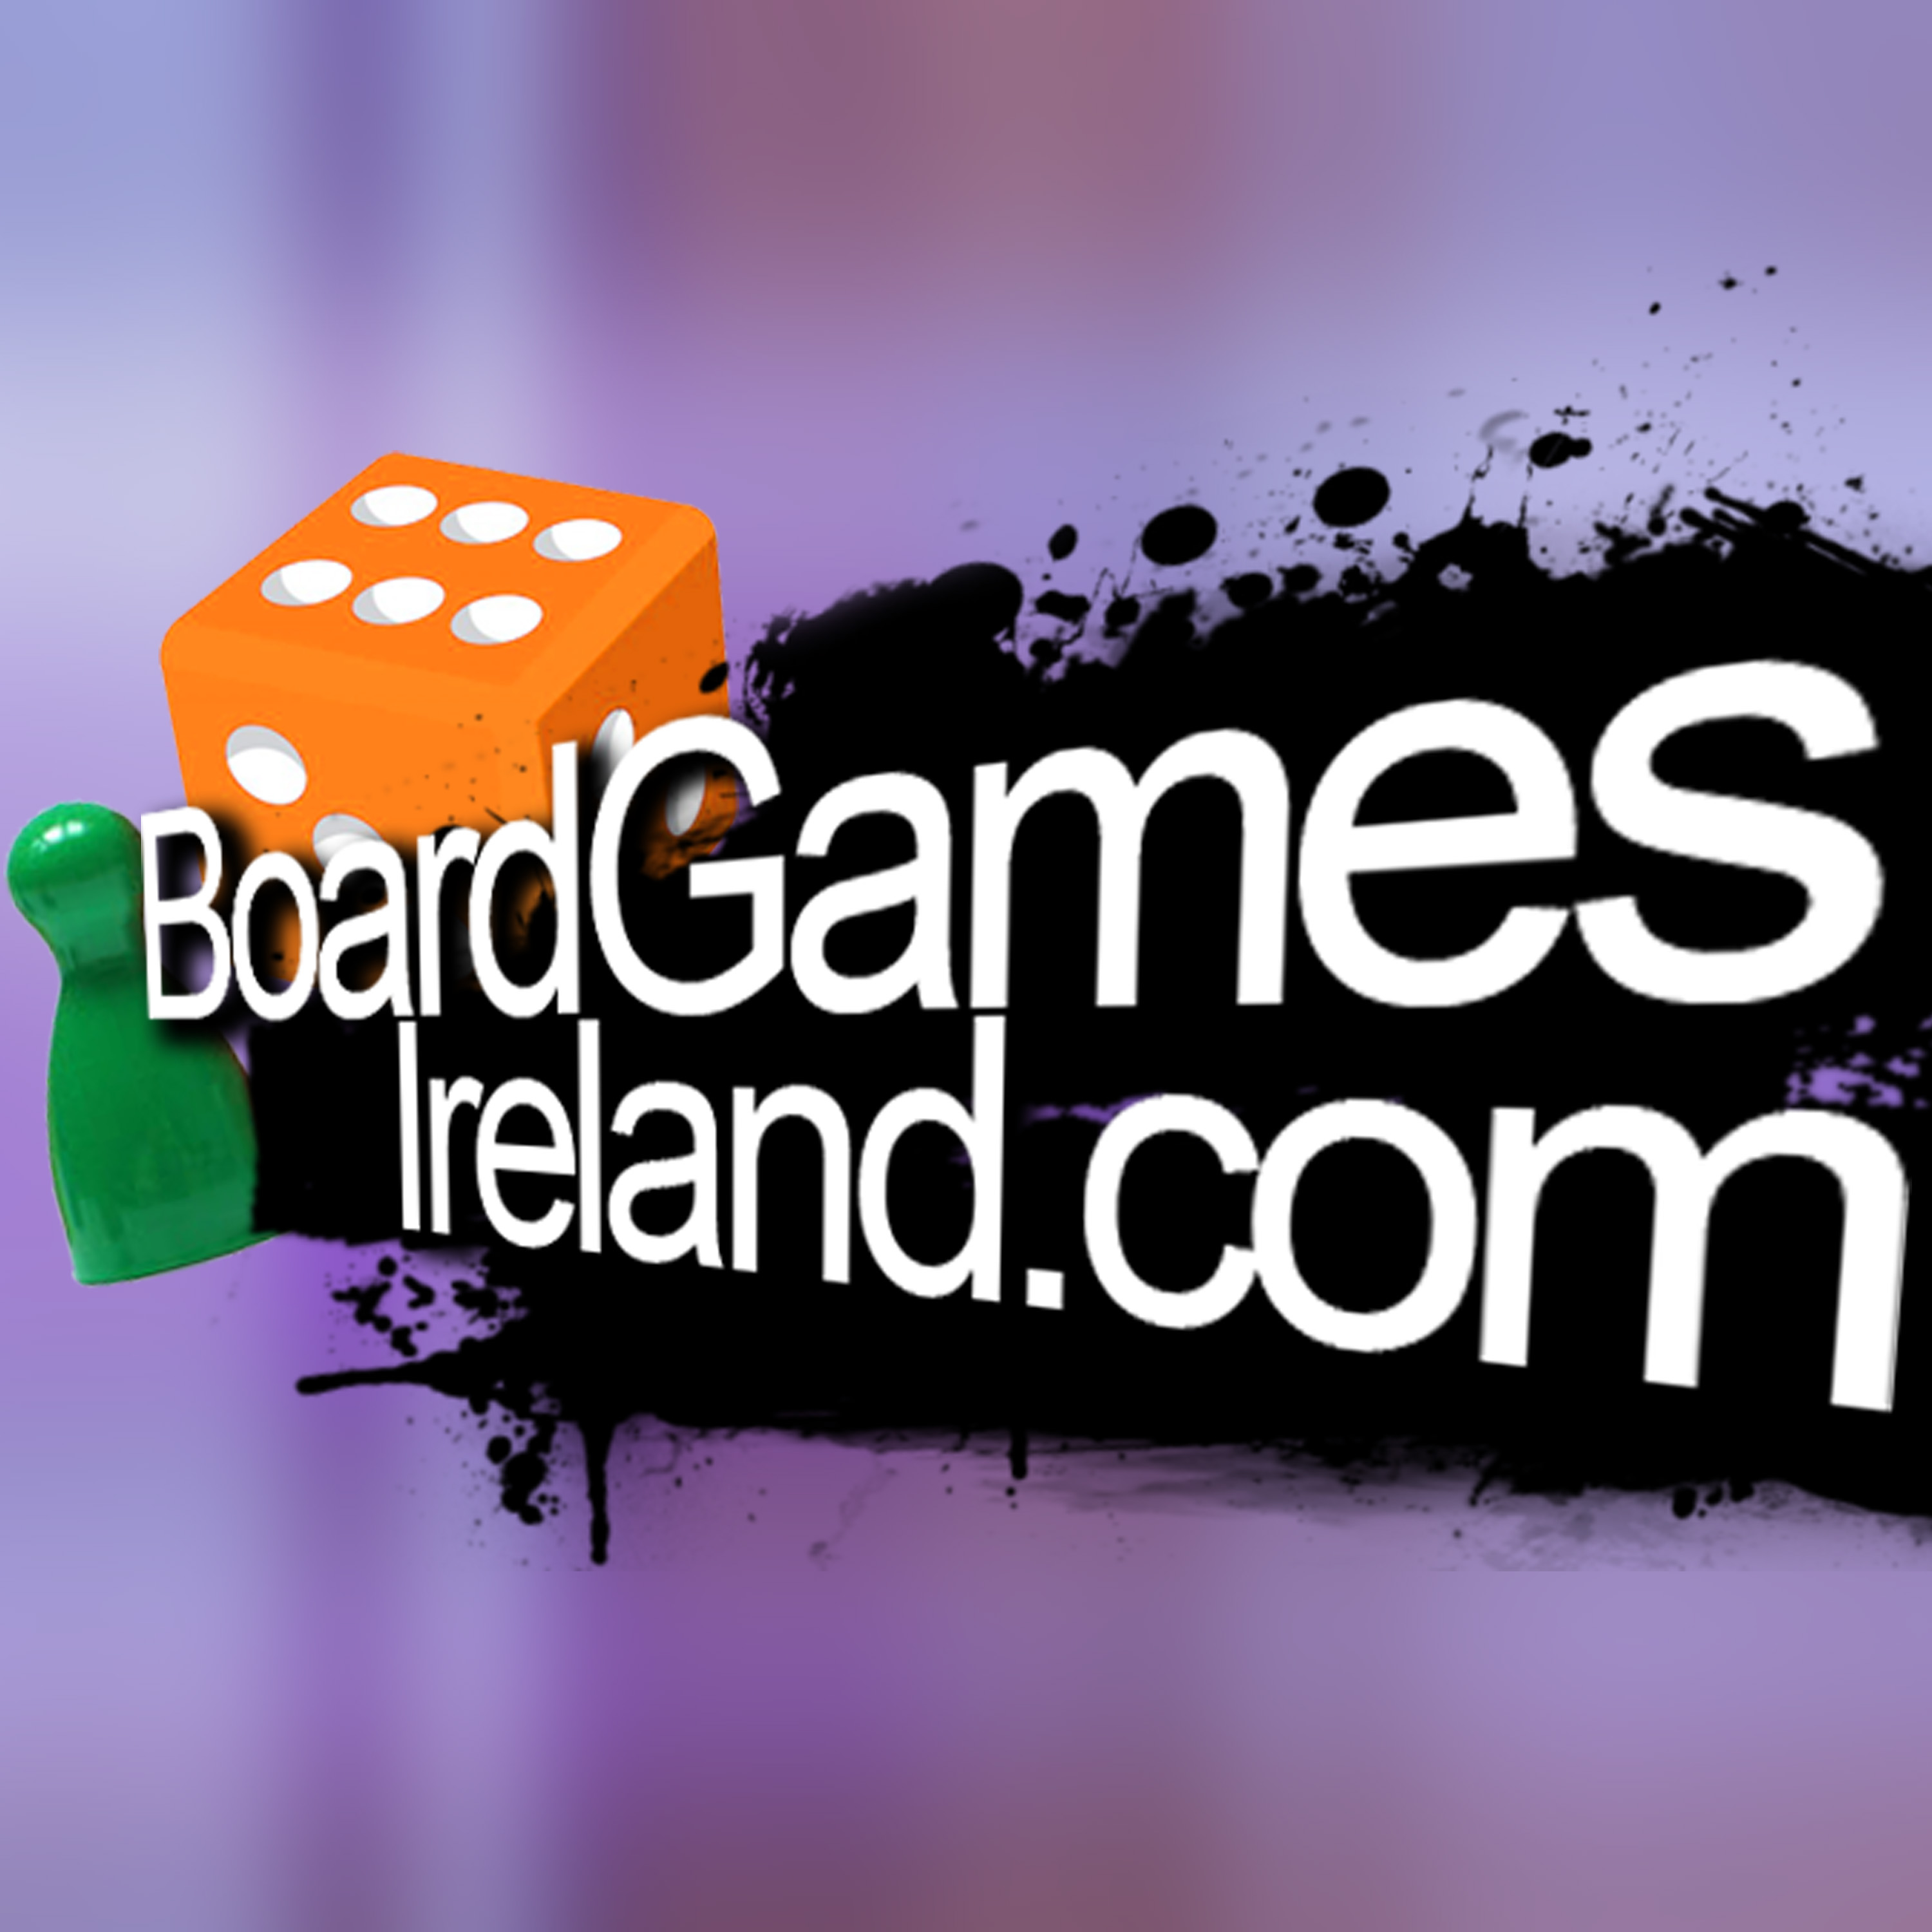 Board Games Ireland